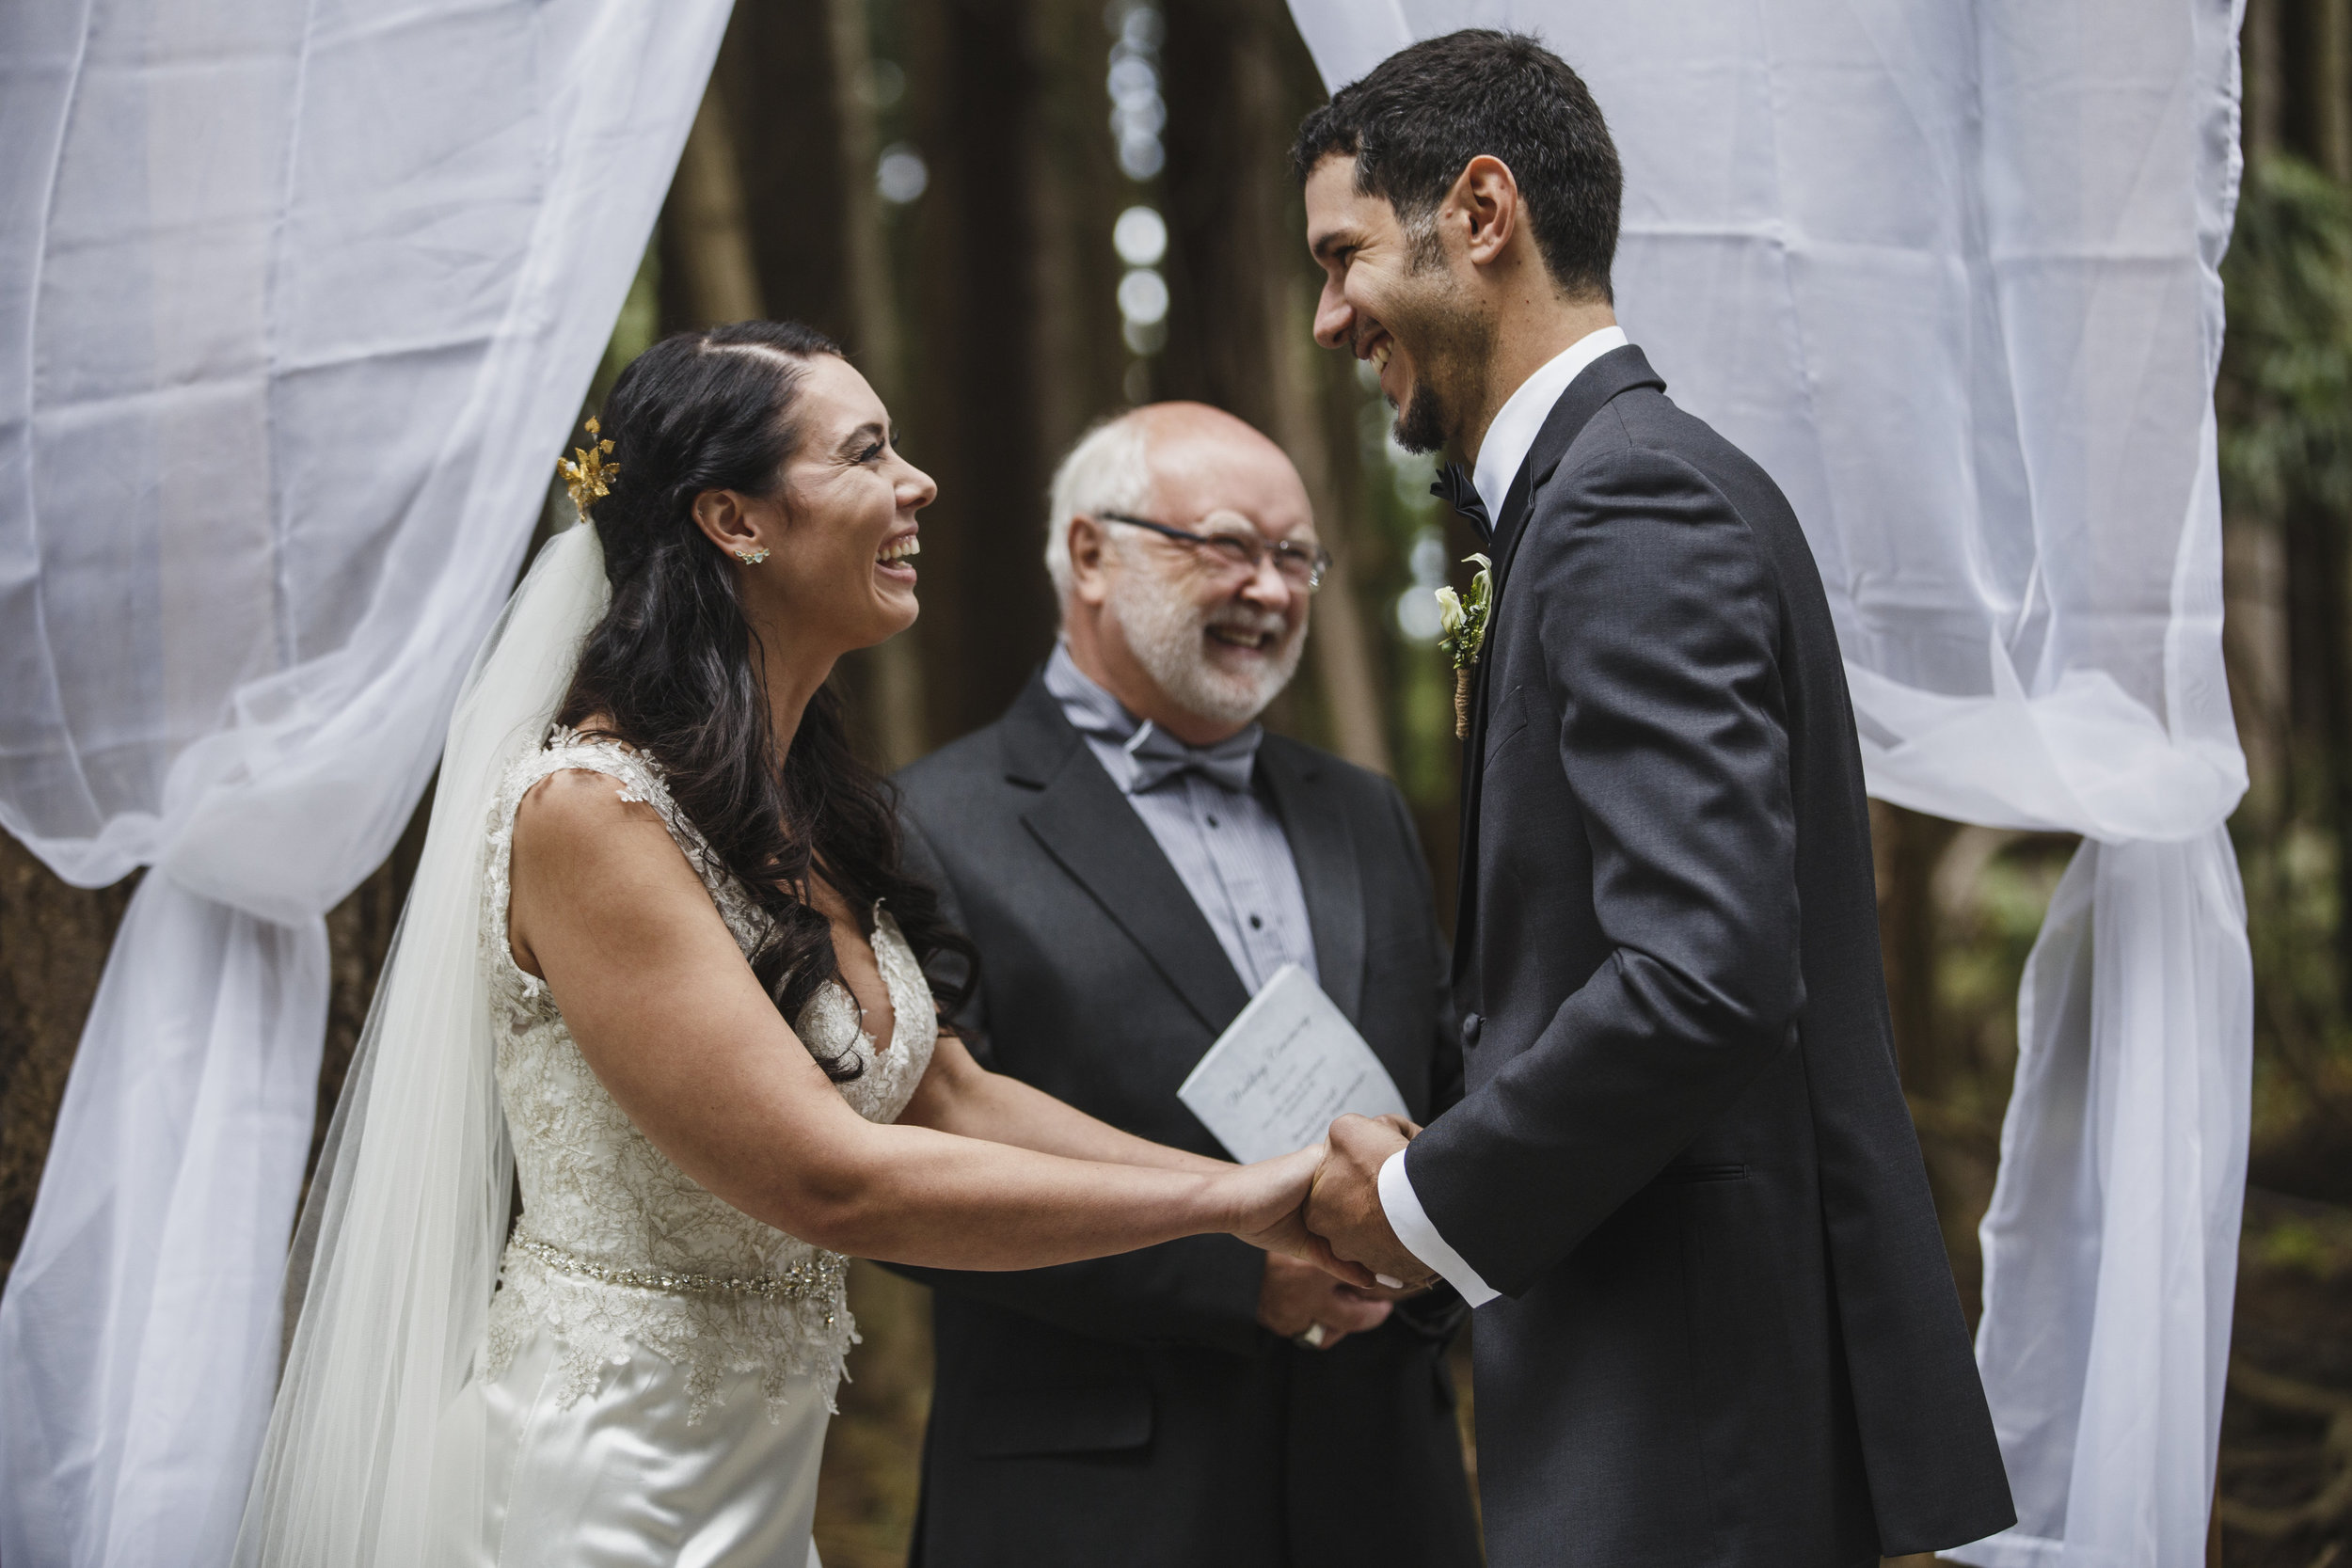 Bride and groom looks at each other happily, Forest Wedding Tofino Sea Cider Vancouver Island